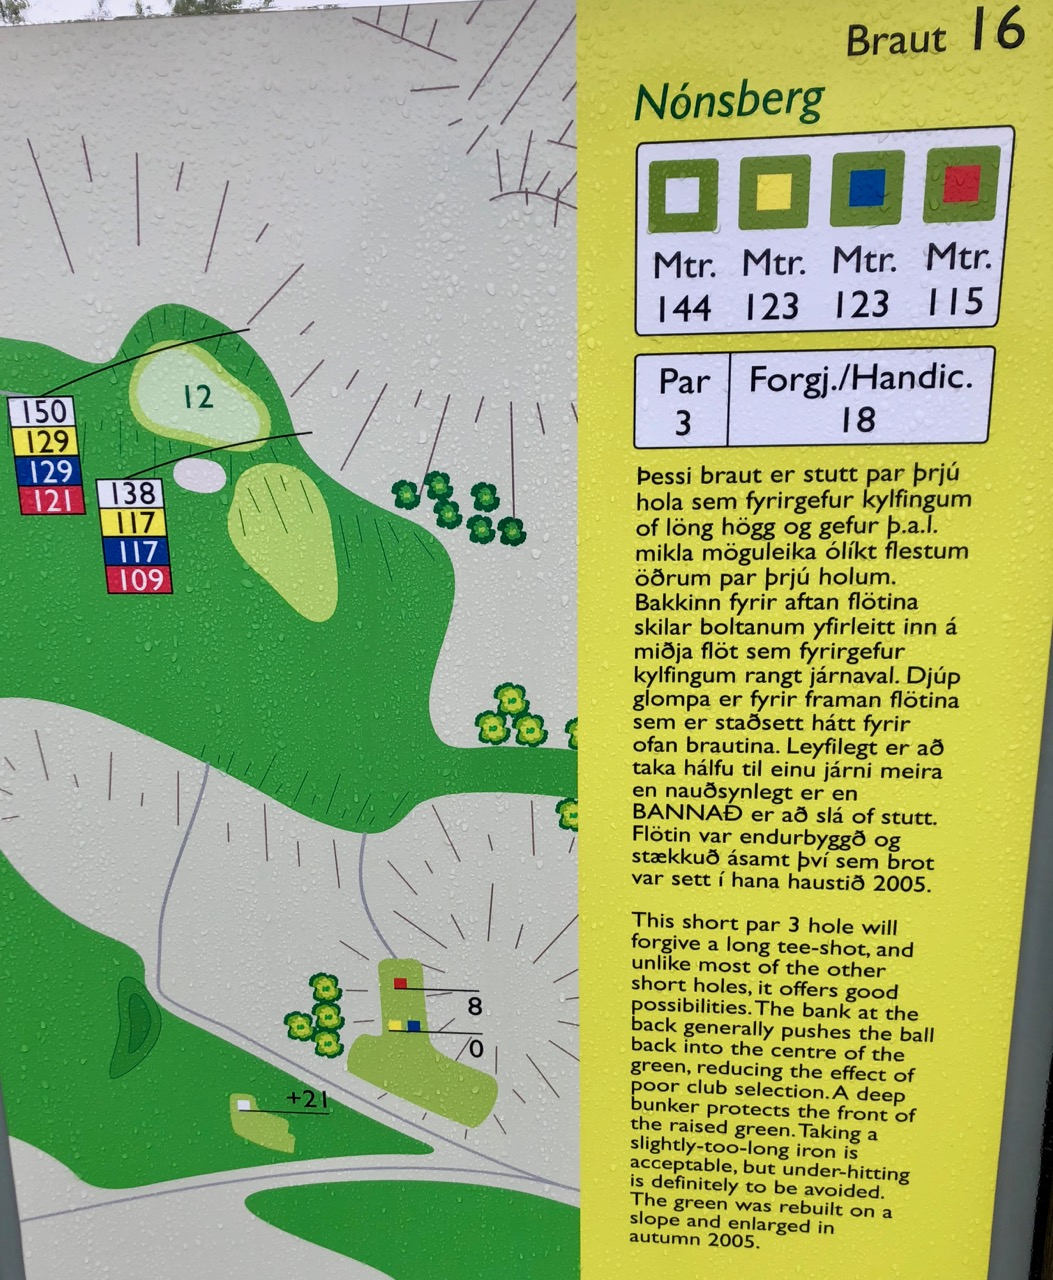 Kidjaberg GC- tee sign on hole 16